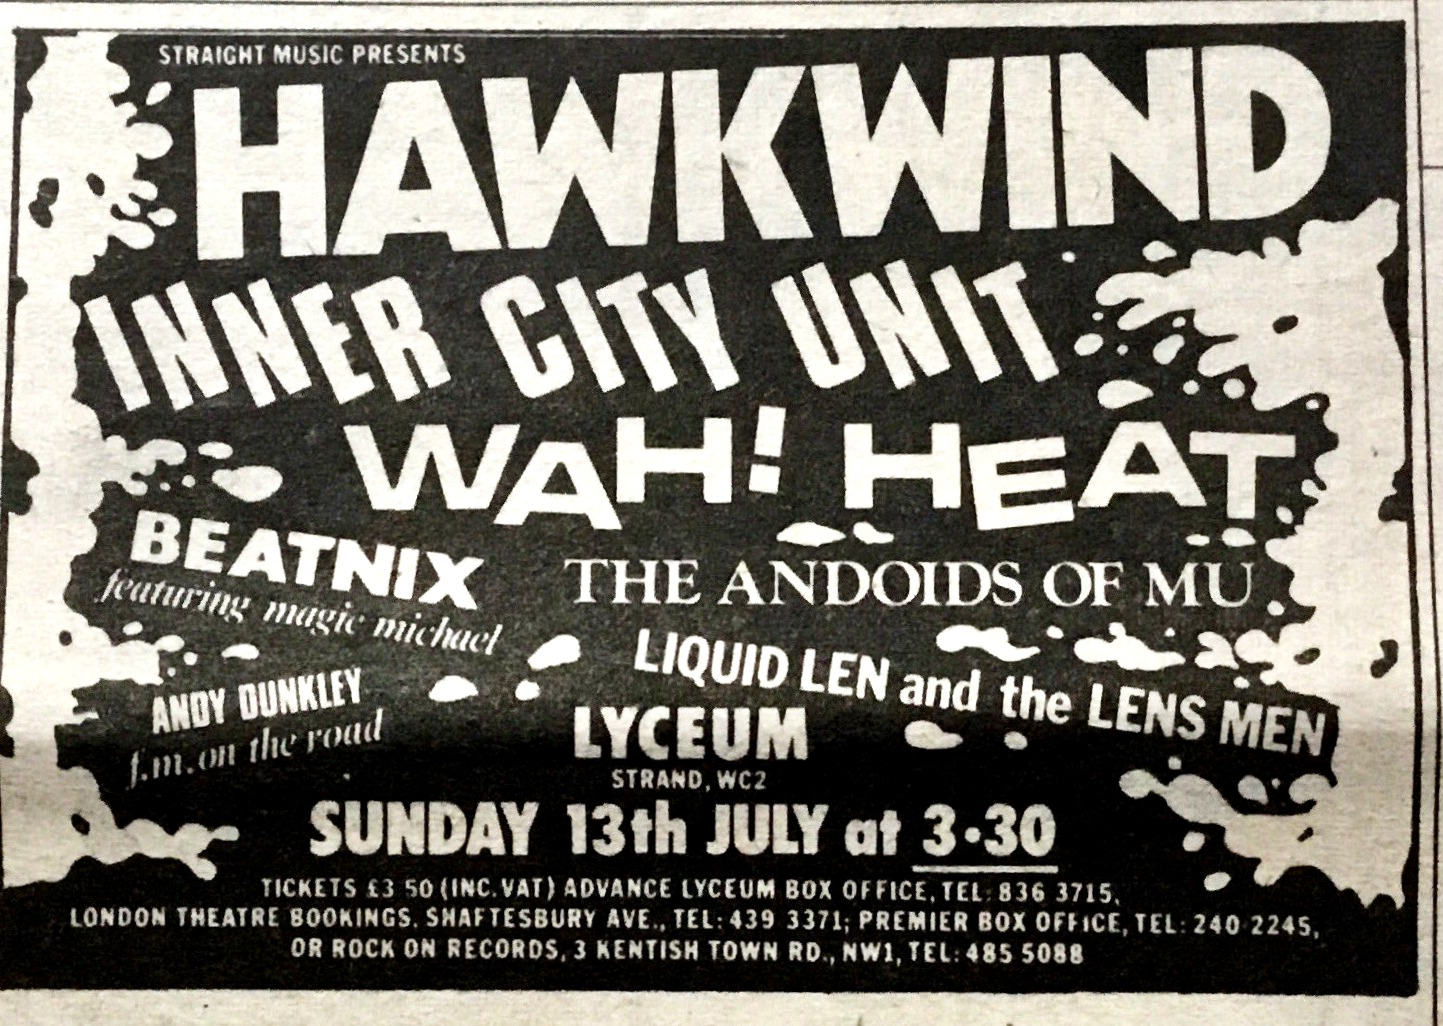 13.07.80 early line-up